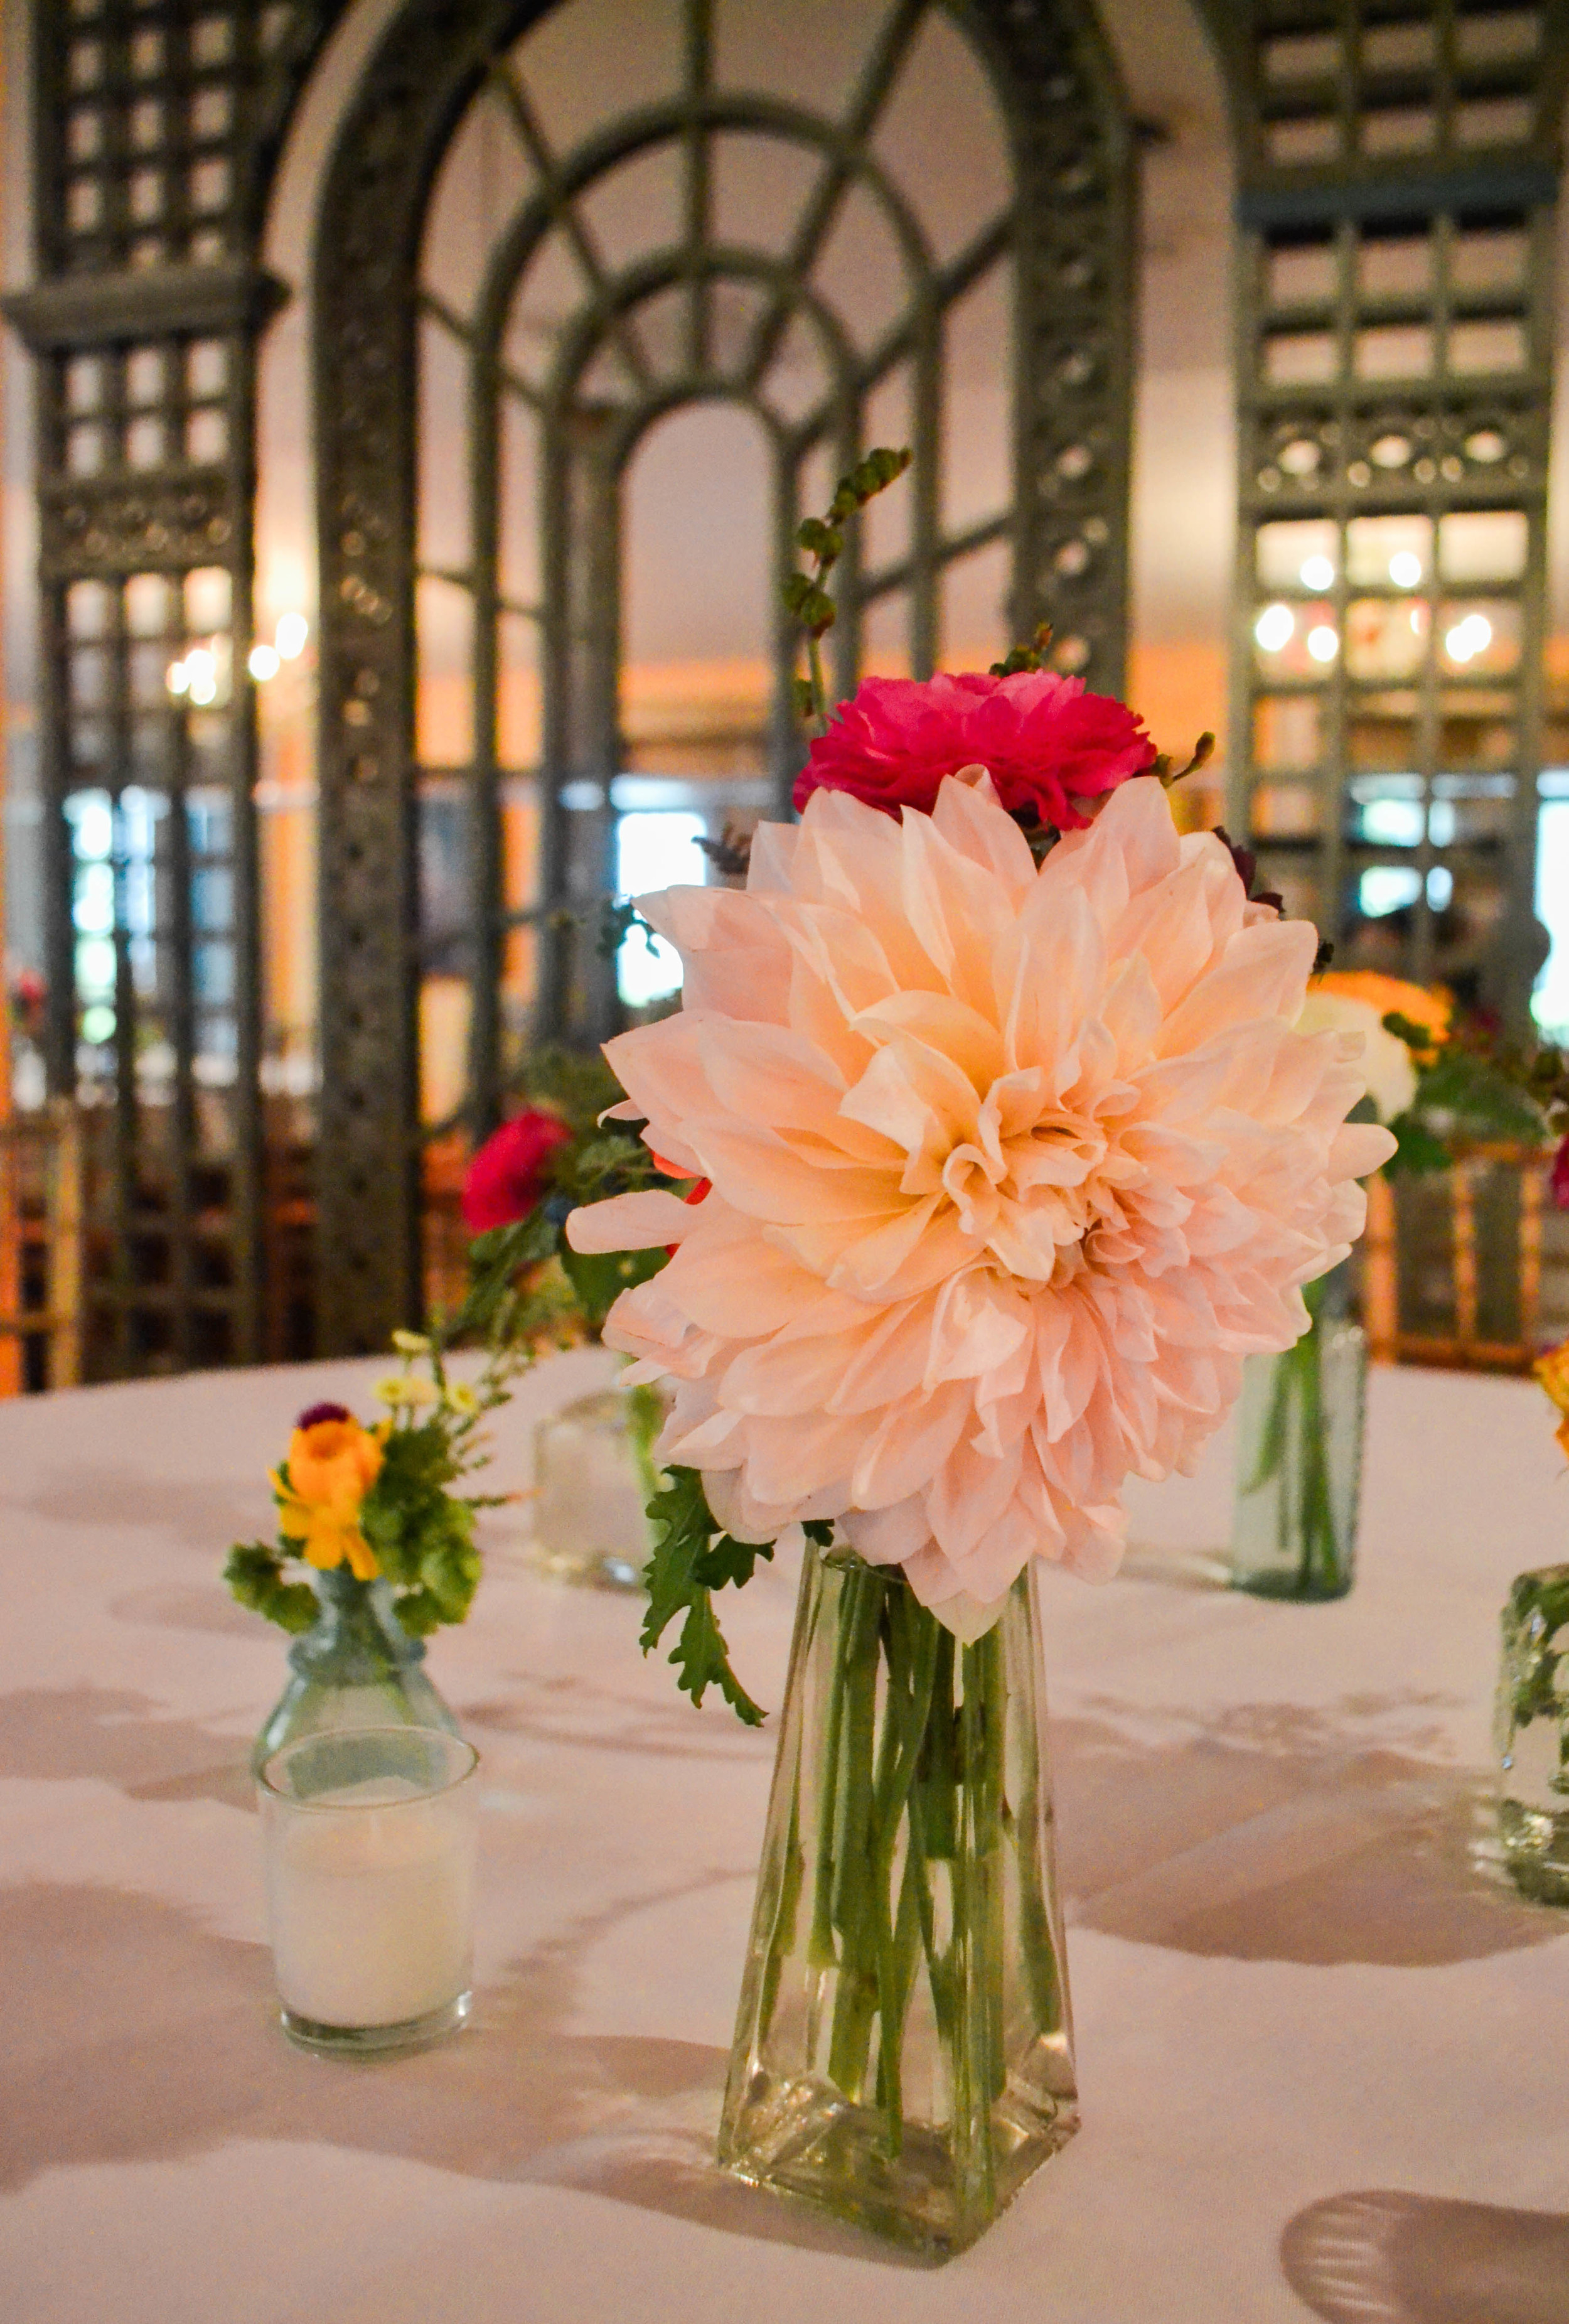 Colorful and romantic flower centerpiece in bud vase bottle. Catskills wedding. August.